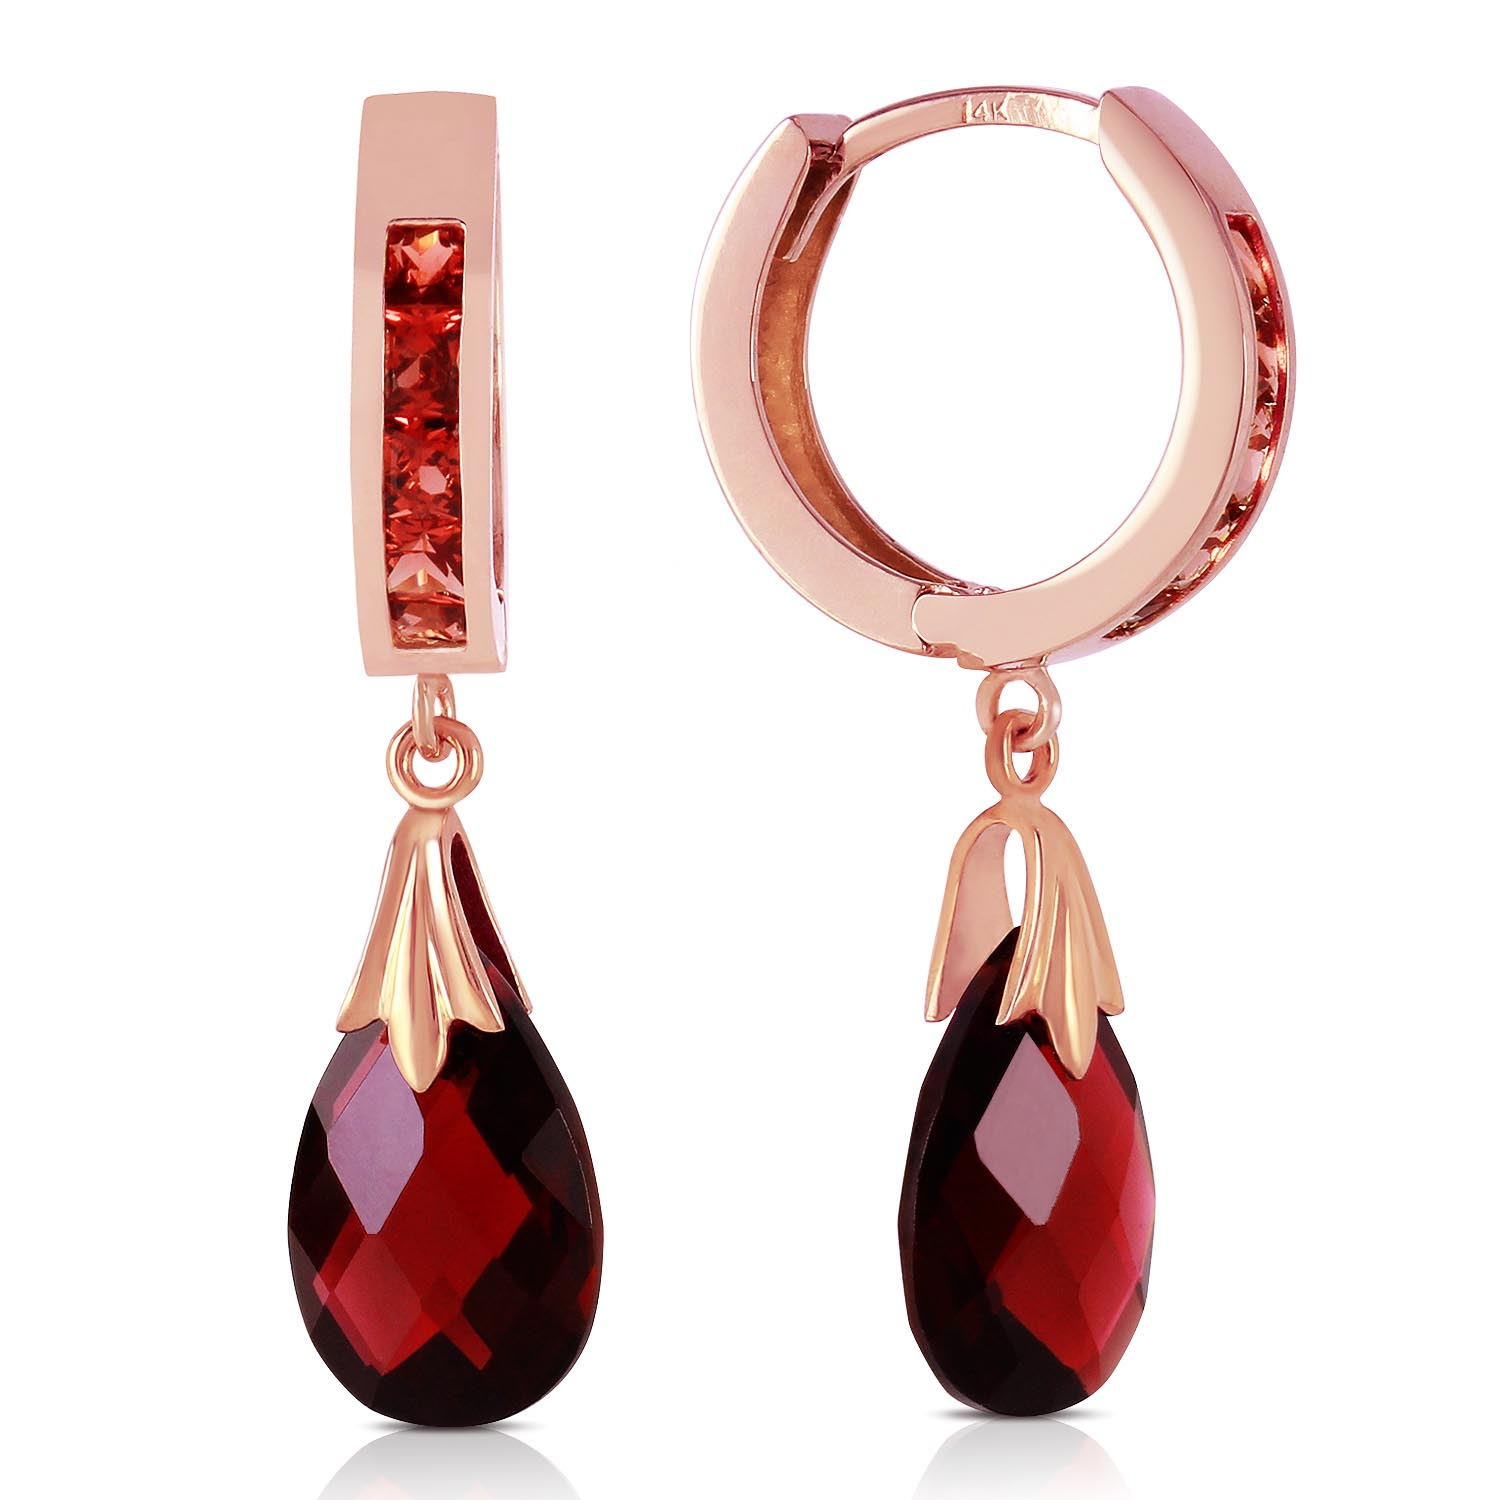 Garnet Droplet Huggie Earrings 6.85 ctw in 9ct Rose Gold